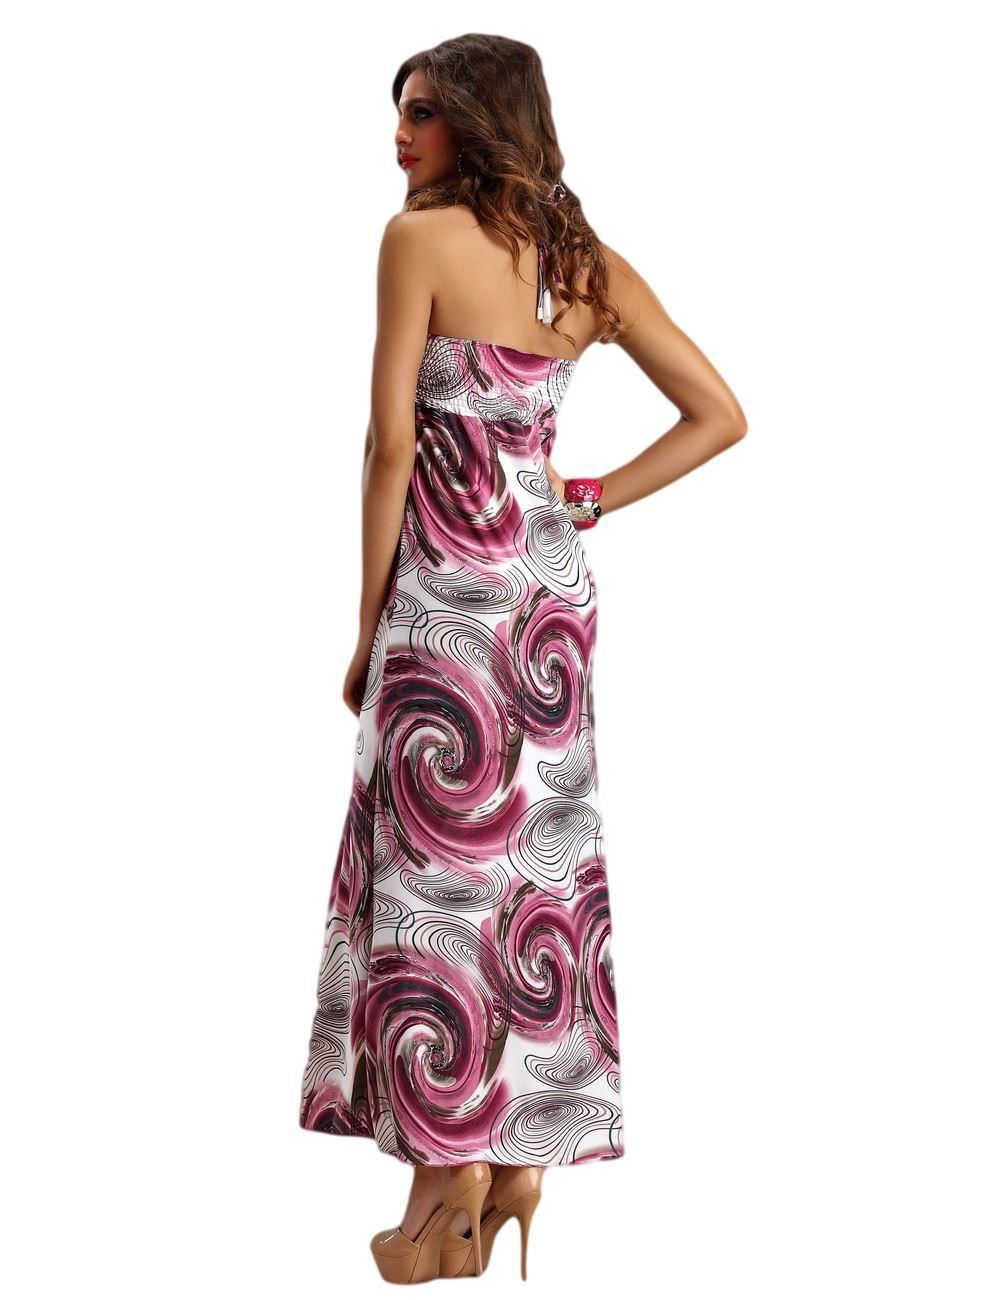 Cheap dresses for every mood Here at Everything5Pounds, we have got the right dress for any and every occasion. From business casual to party dresses for a night out on the town, our selection aims to please every woman's taste and budget no matter the occasion.